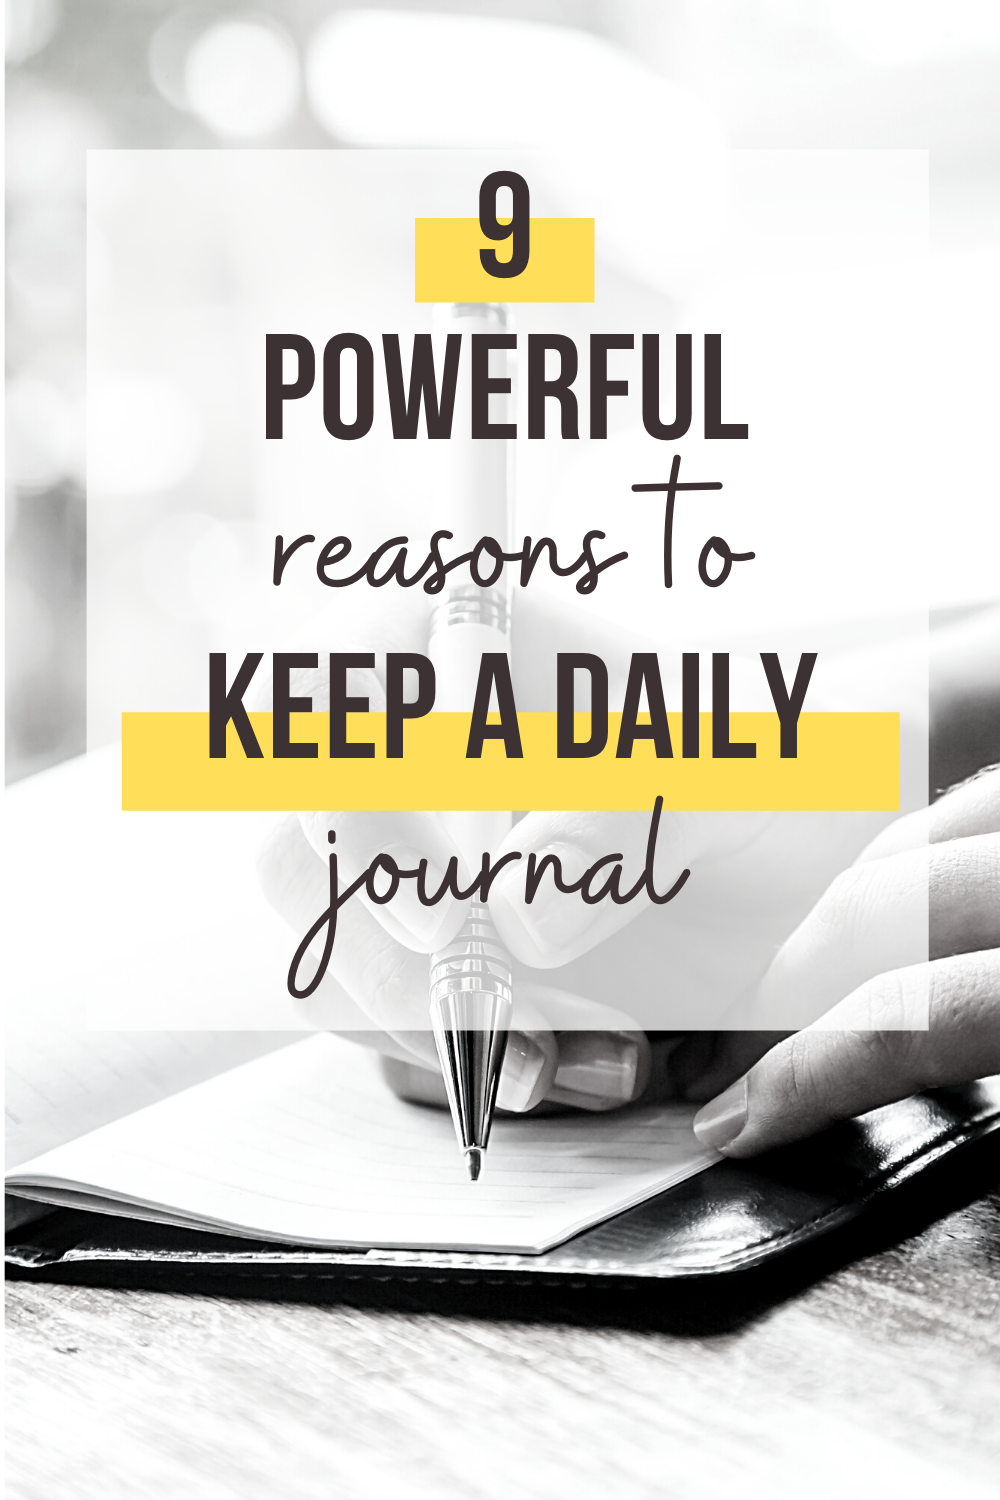 These writing prompts will show you how powerful it is to keep a daily journal - and it's way cheaper than therapy!